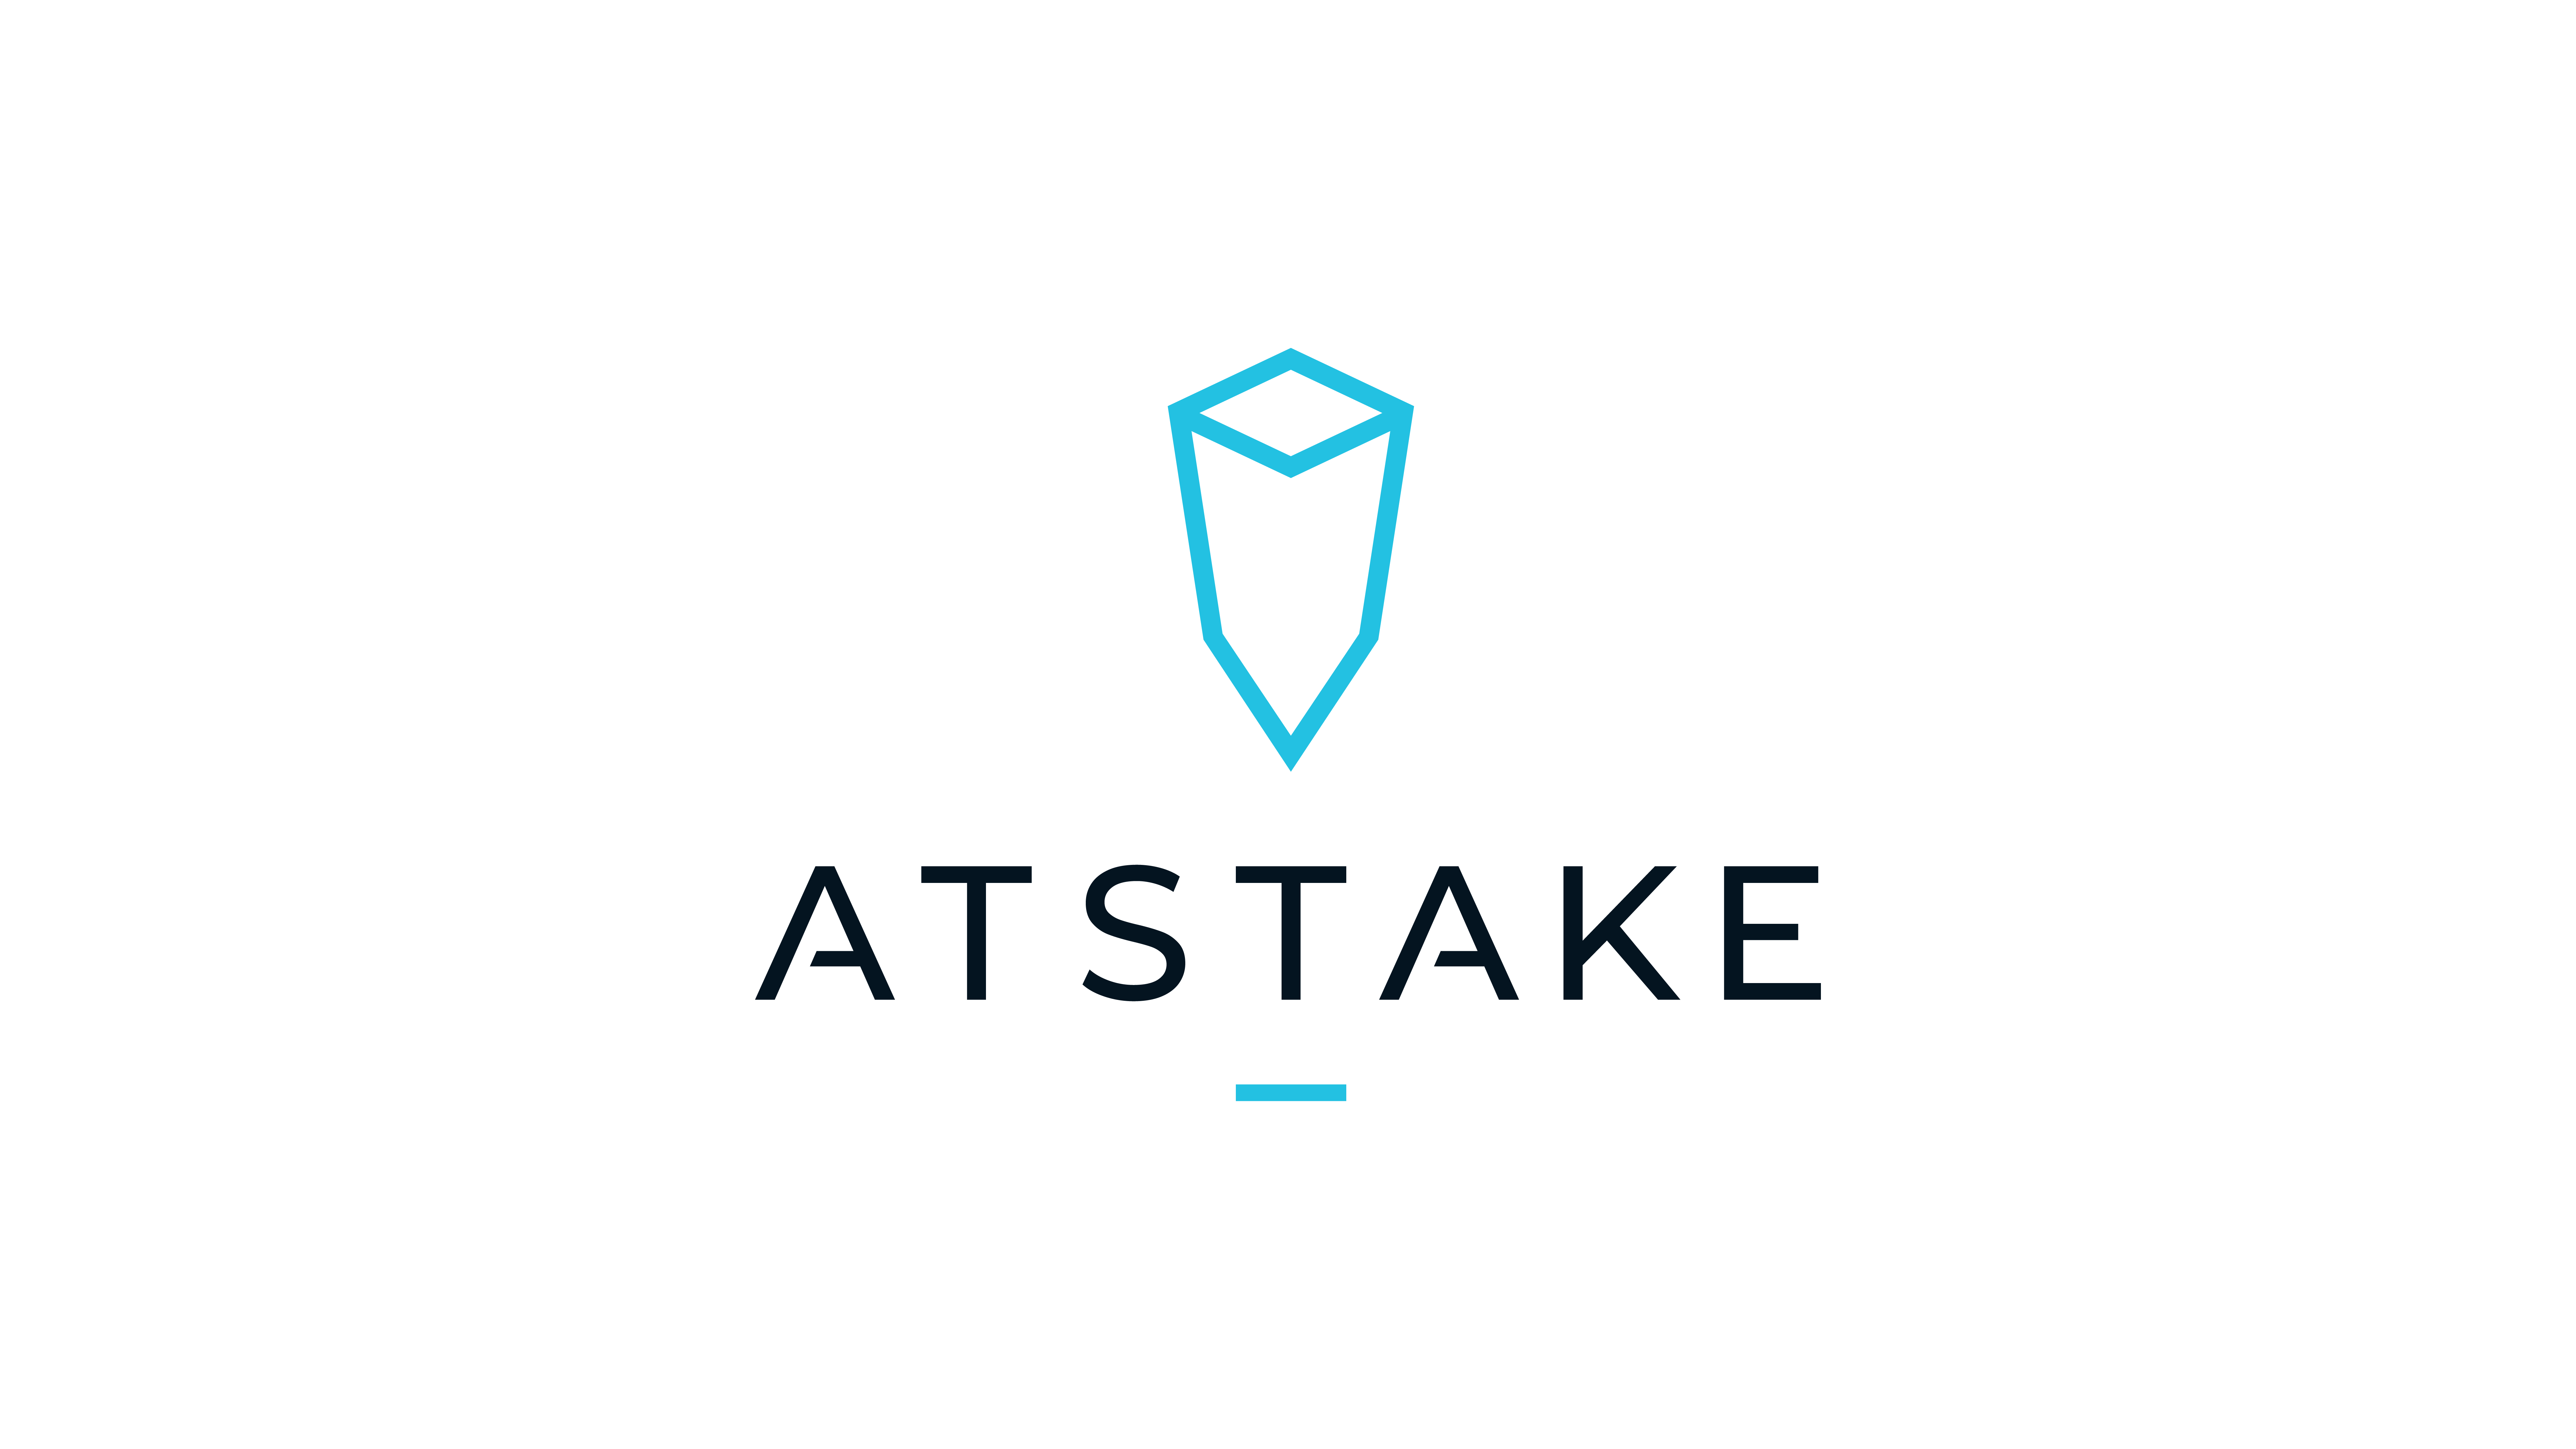 Cryptocurrency startup looking for a simple geometric logo evoking one of our themes